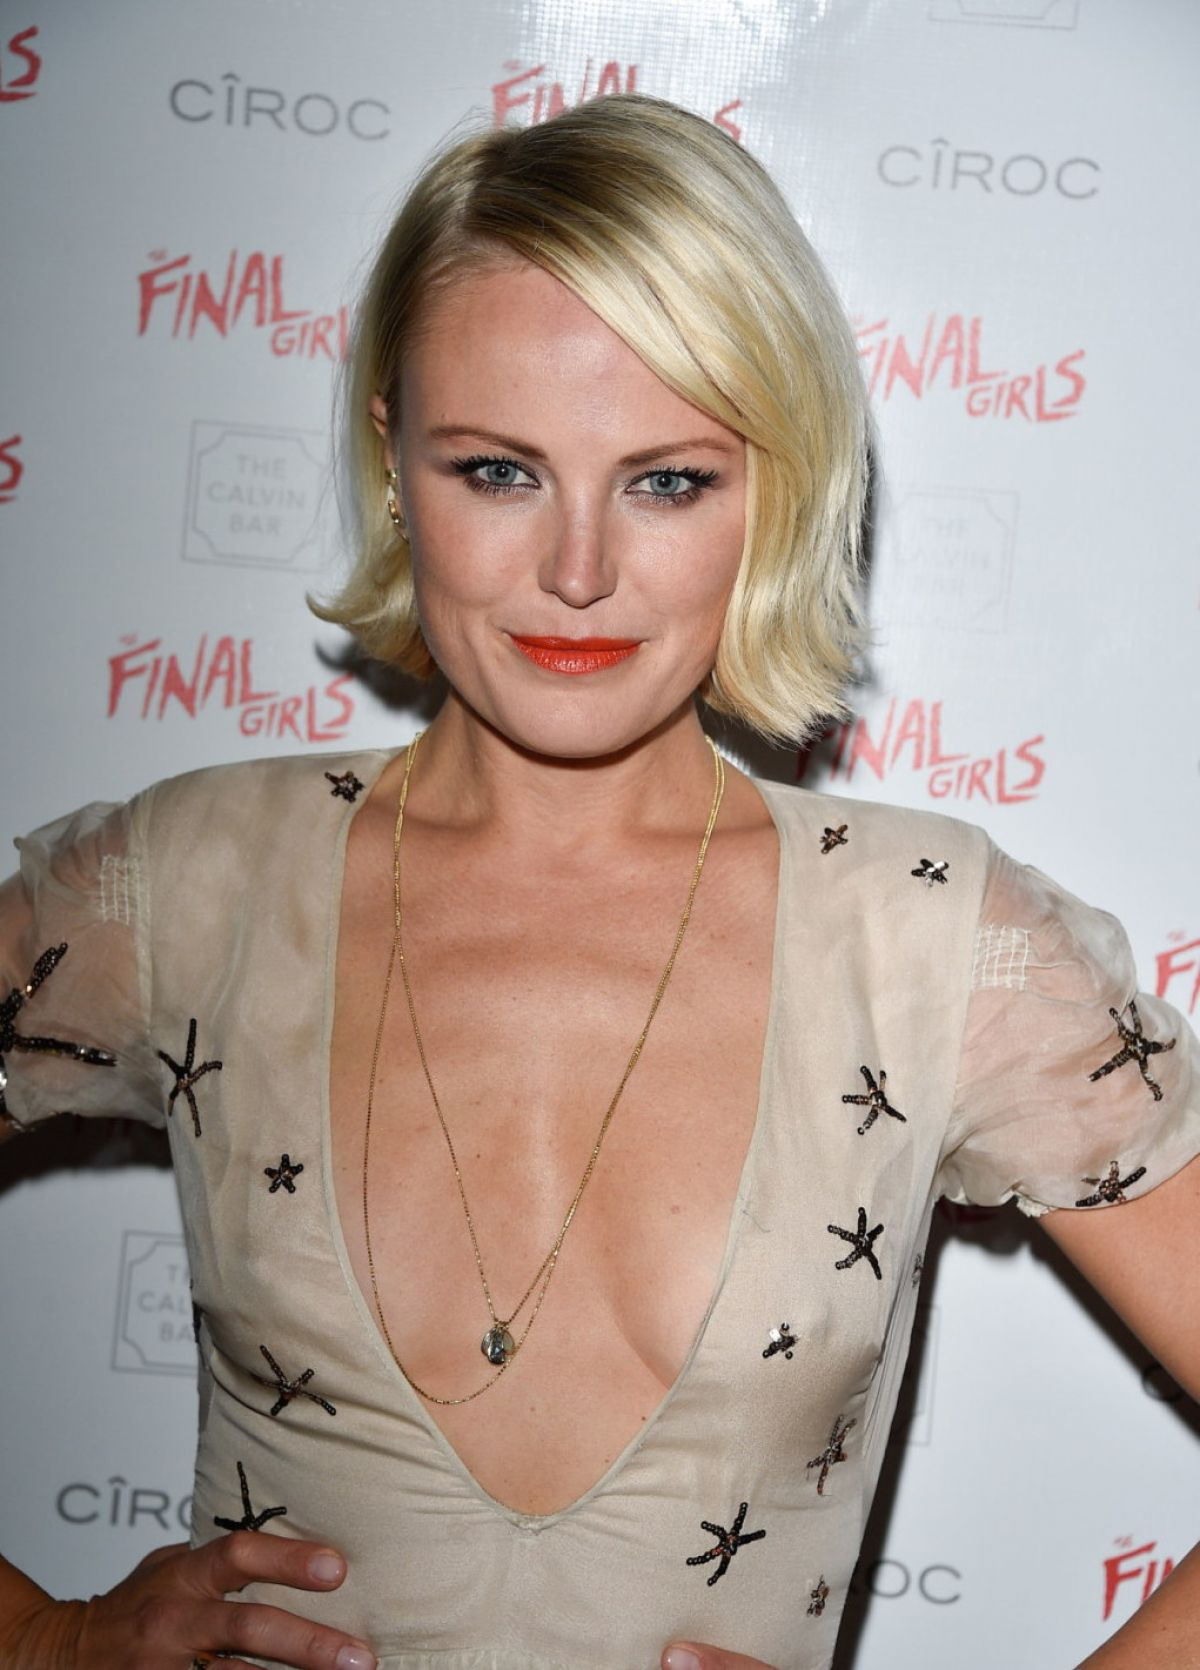 Pics Malin Akerman nude (64 foto and video), Pussy, Cleavage, Feet, swimsuit 2019